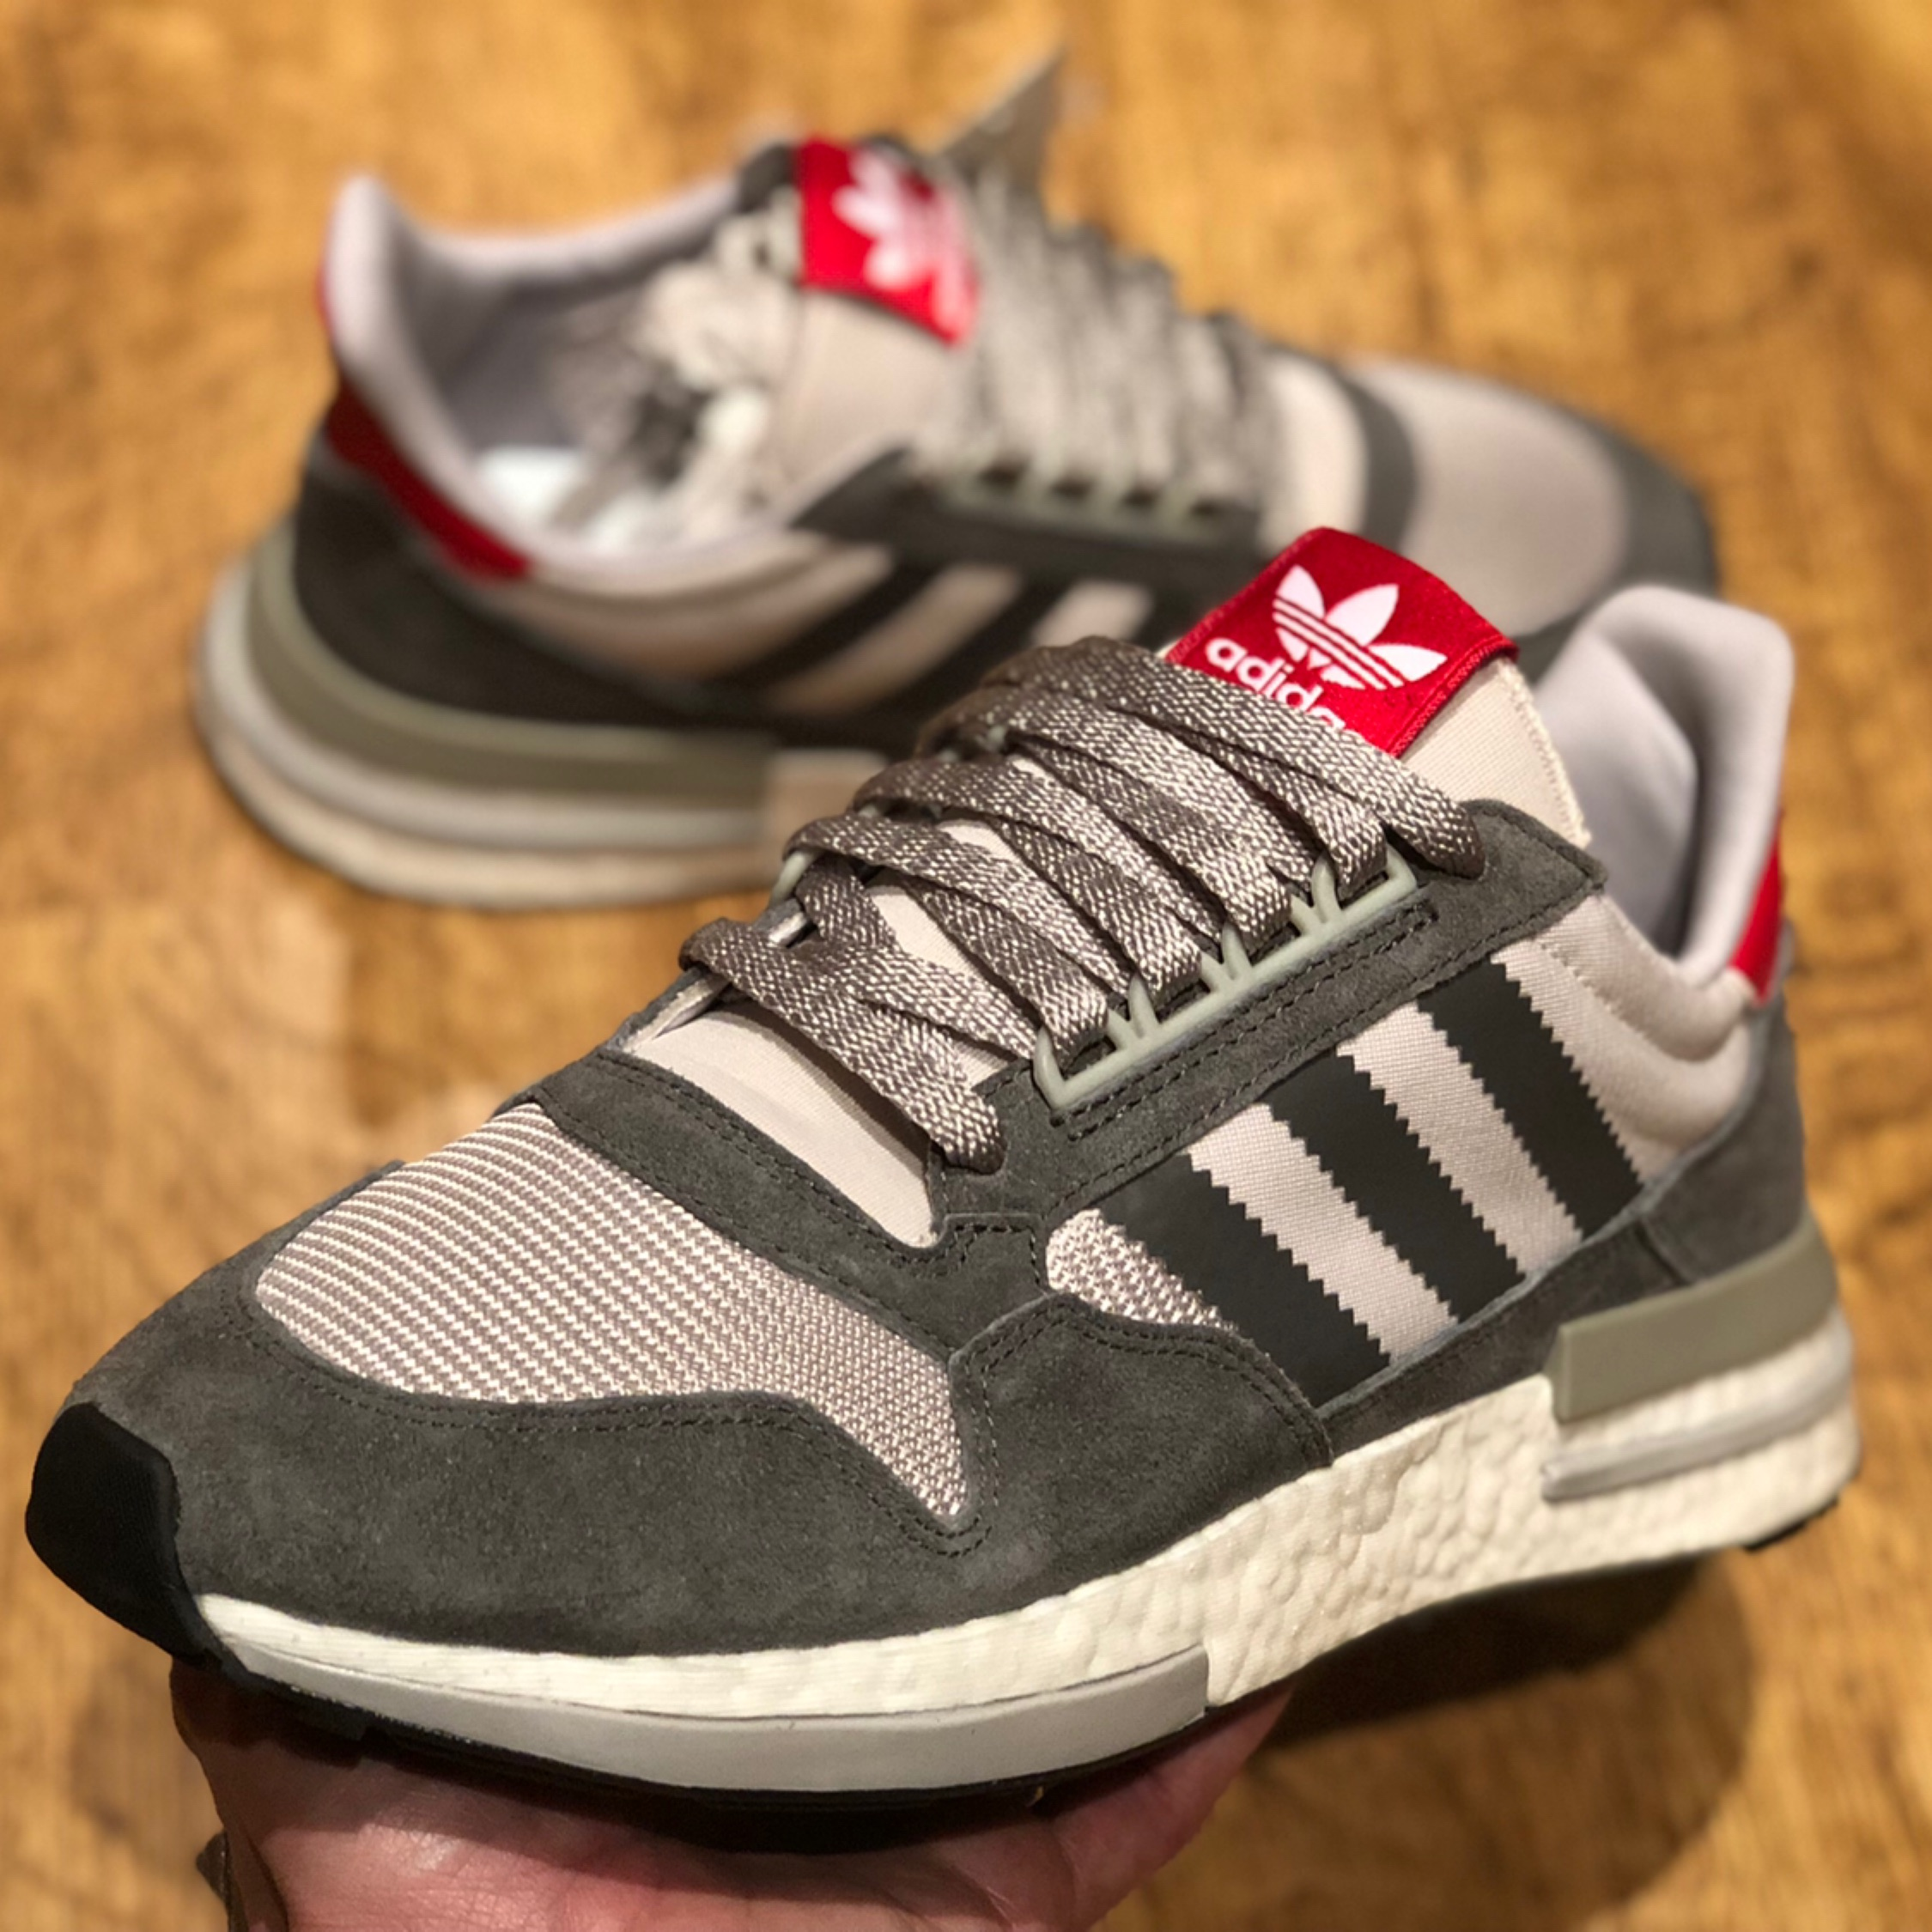 newest ef20b 1ca7e Adidas Zx 500 Rm Boost Uk 8.5 Brand New With Tags